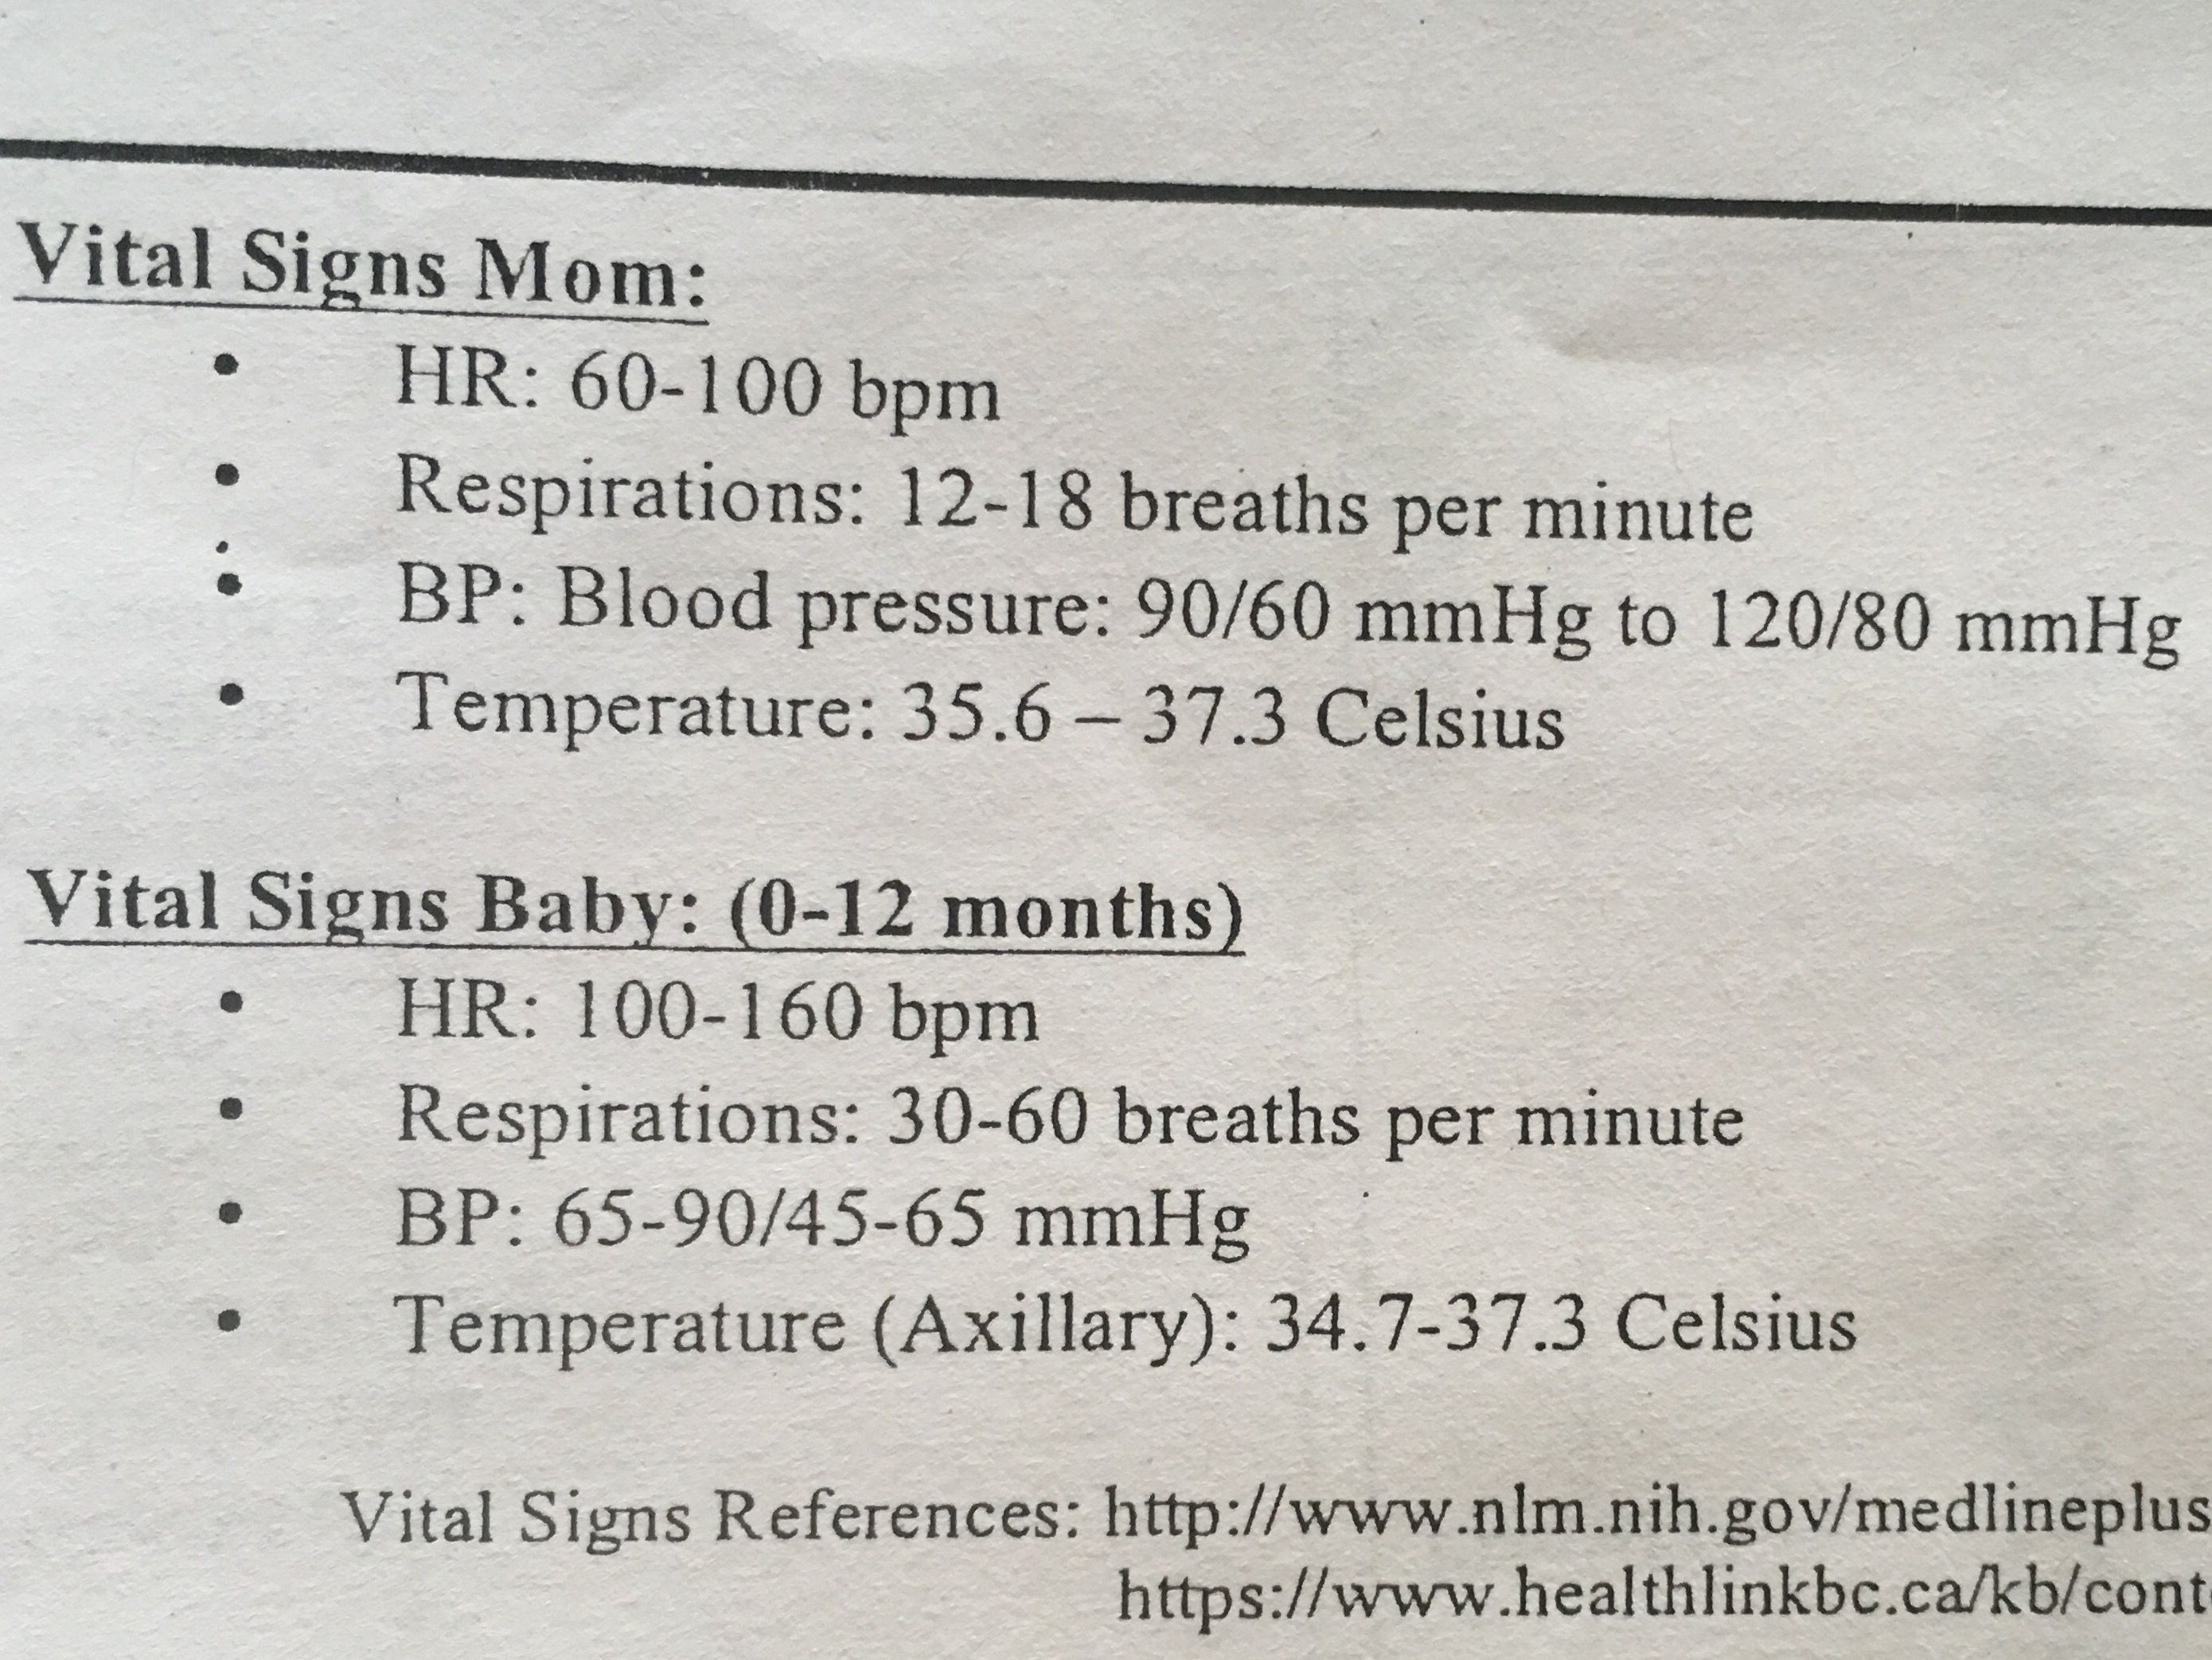 Maternity Vital Signs Cheat Sheet With Images